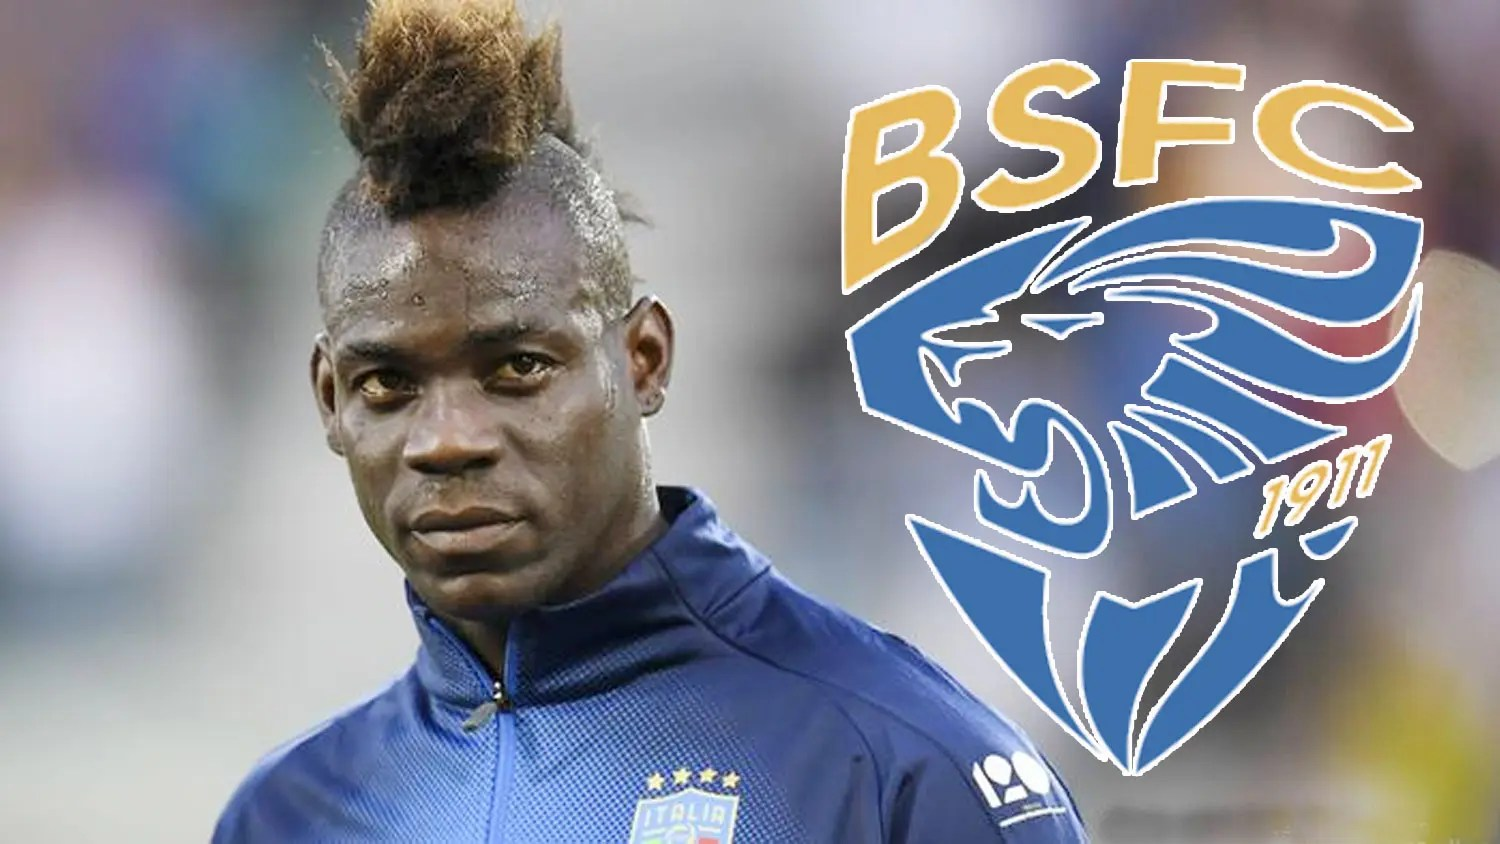 Former Inter and AC Milan striker Balotelli signs for Brescia